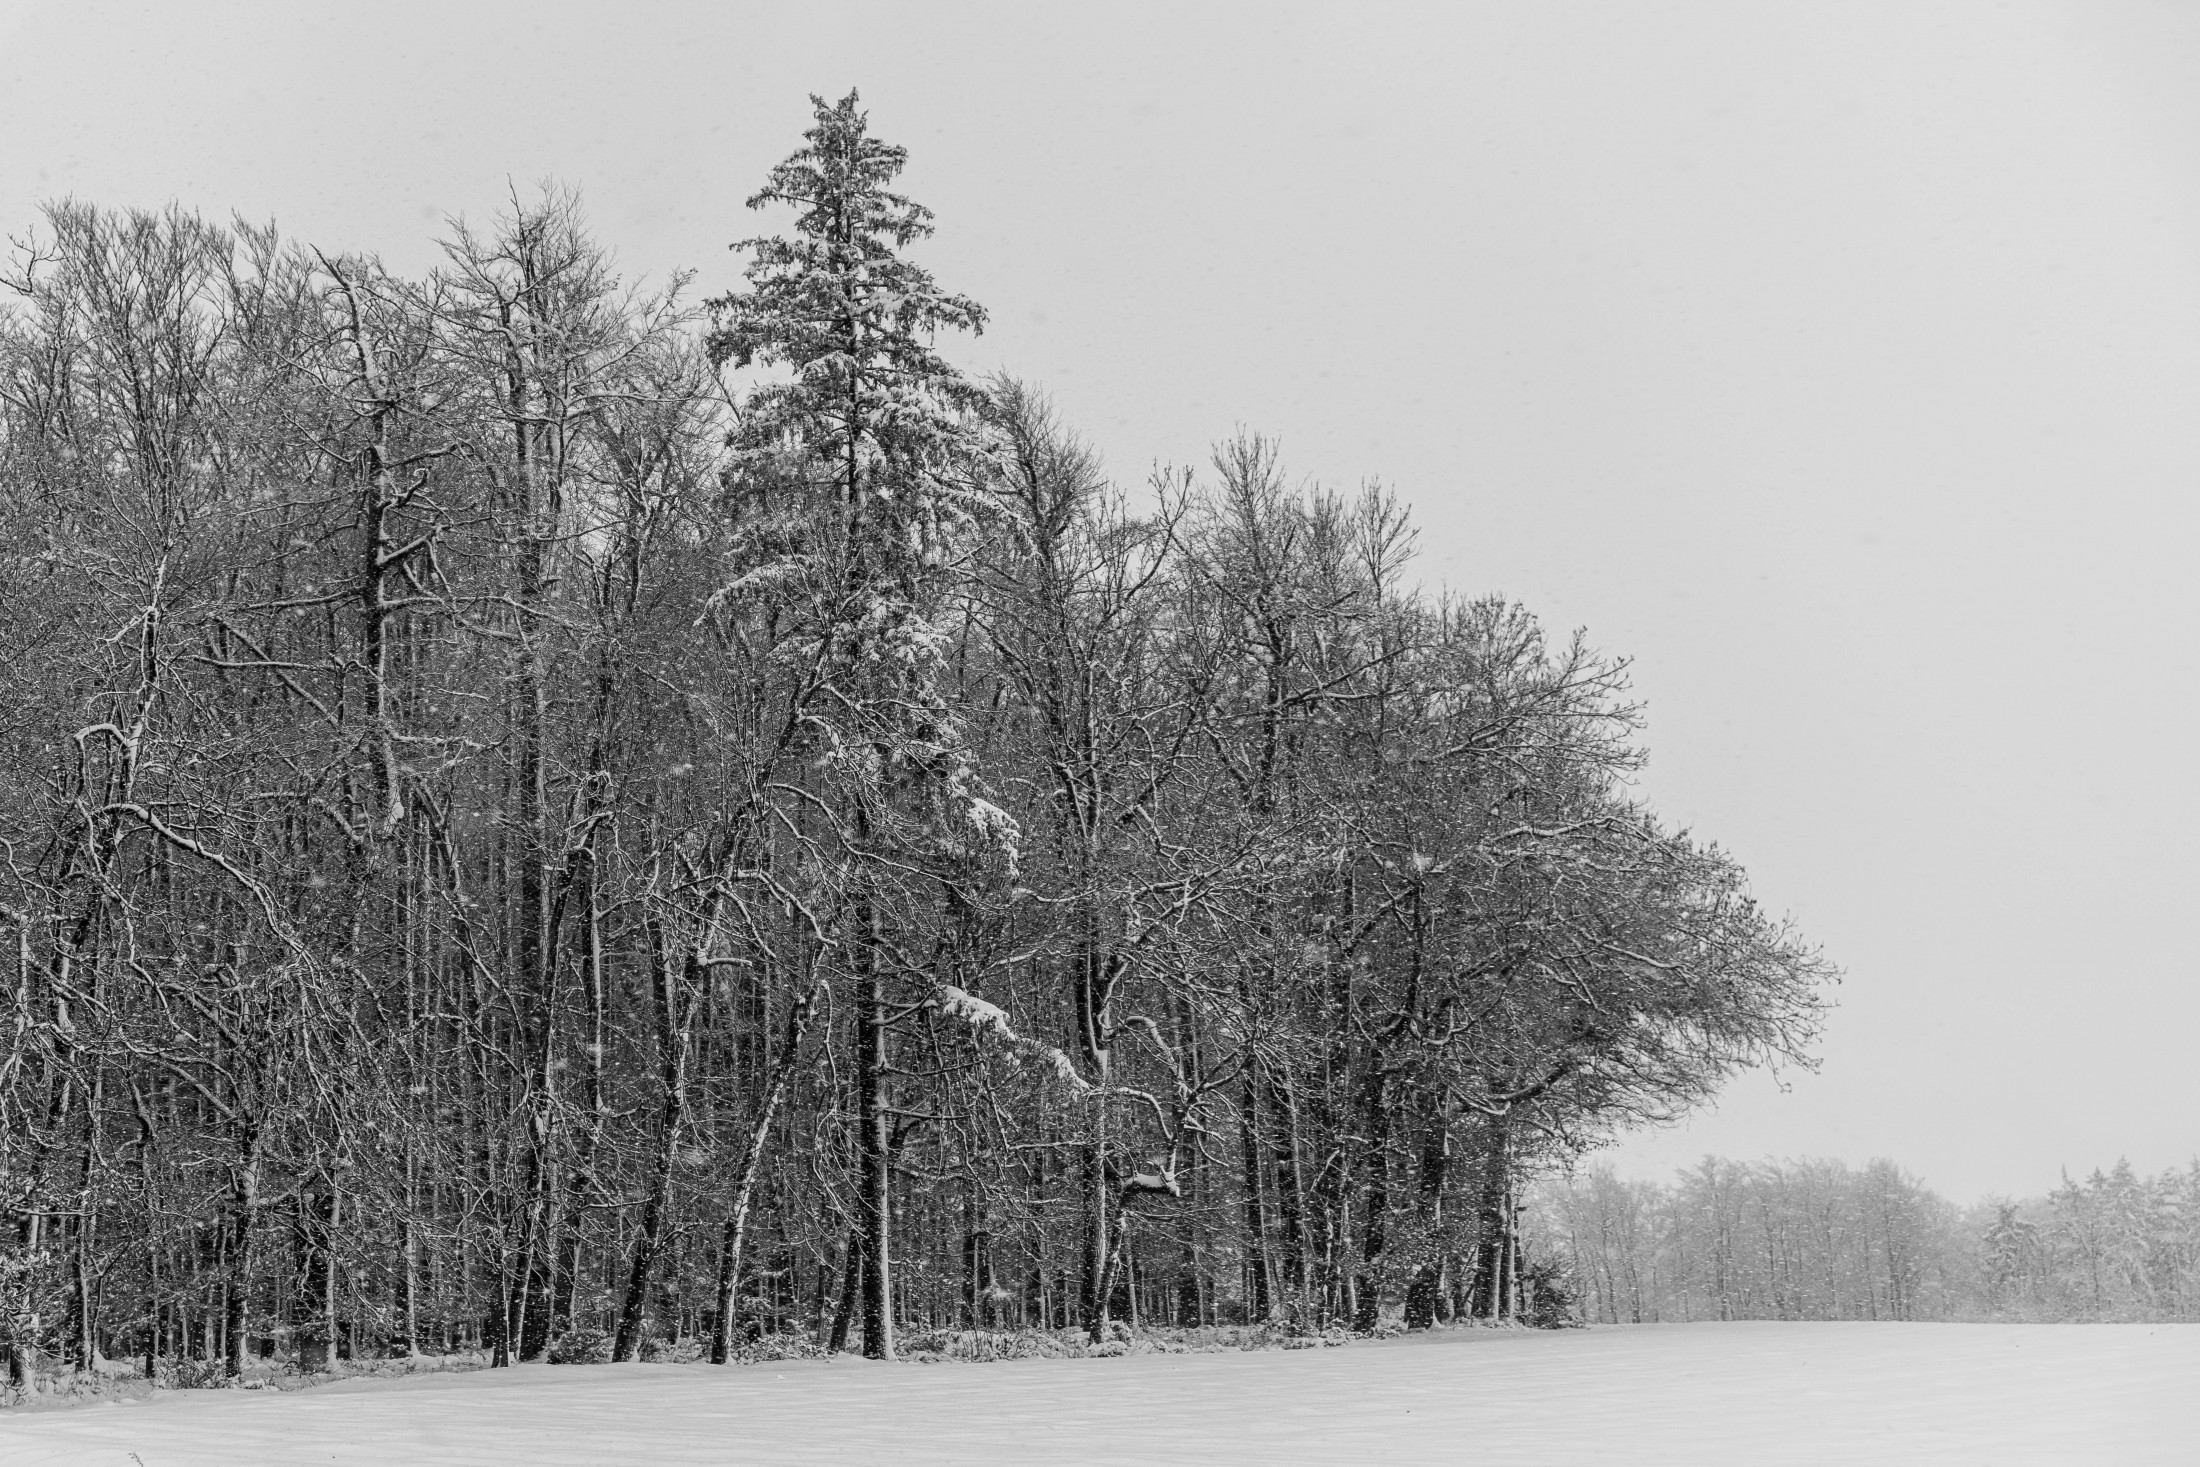 Forest trees in the snow